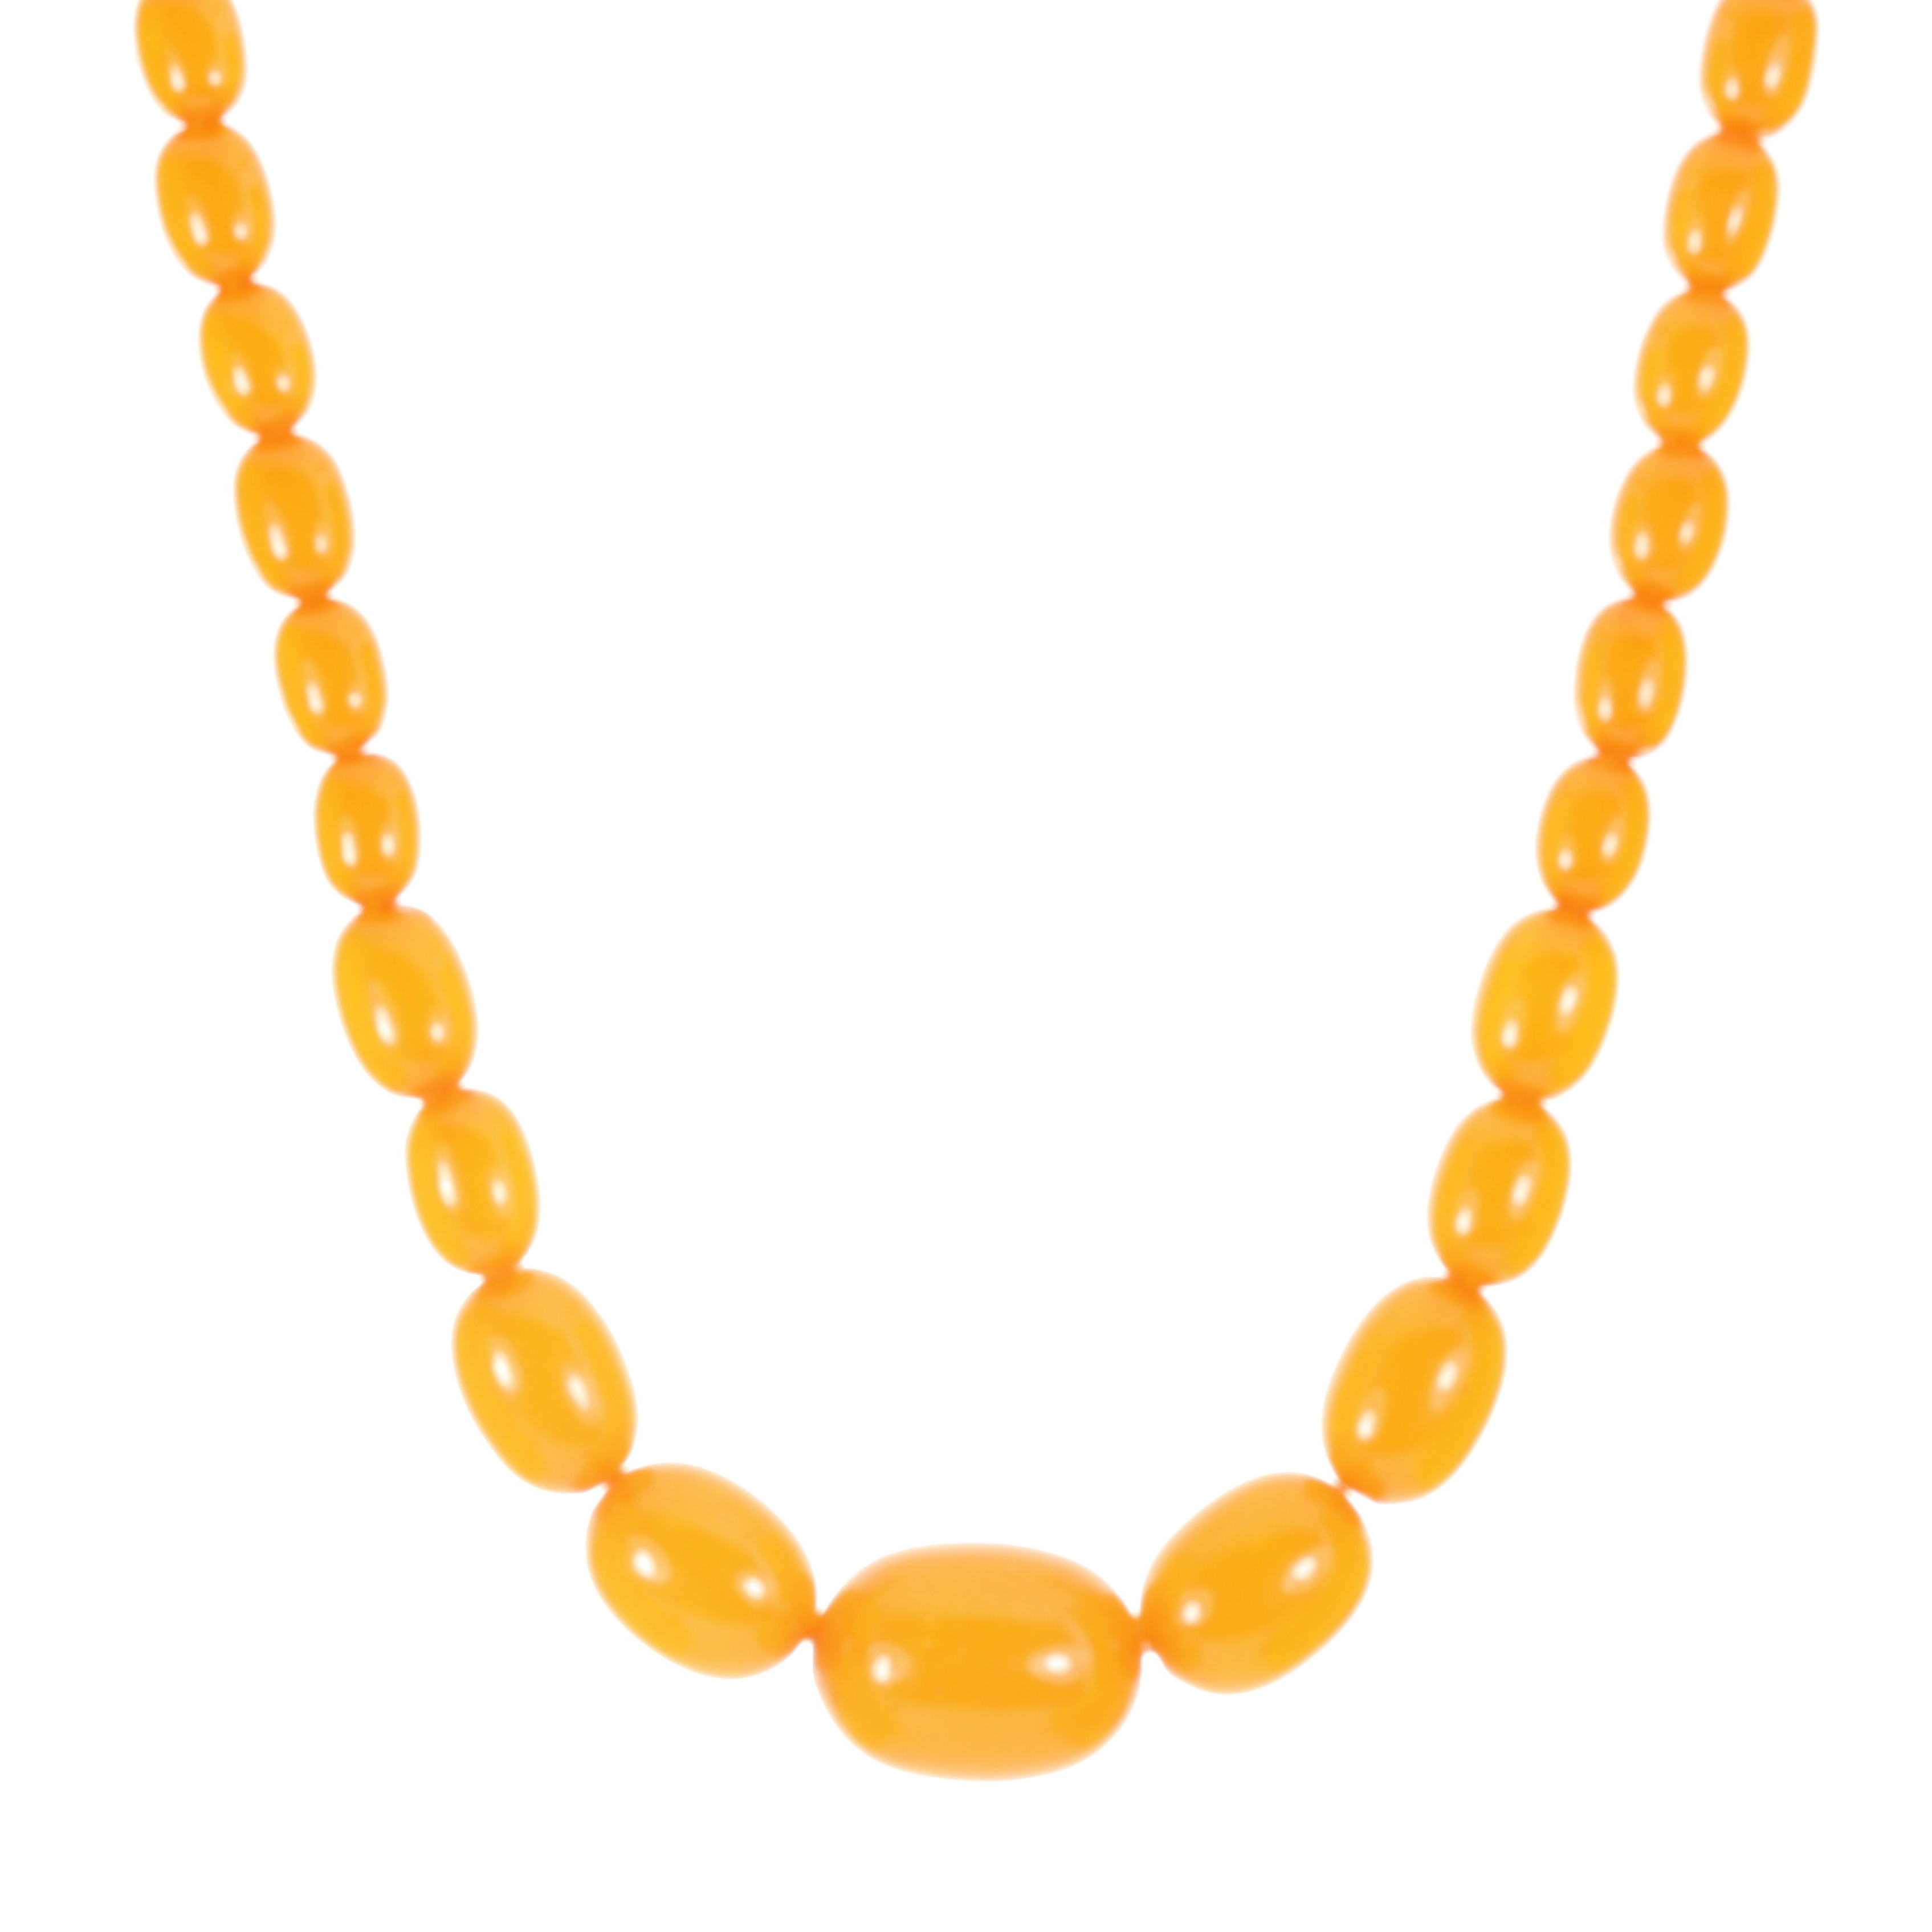 Los 14 - AN AMBER BEAD NECKLACE comprising a single row of forty-three graduated polished oval beads up to